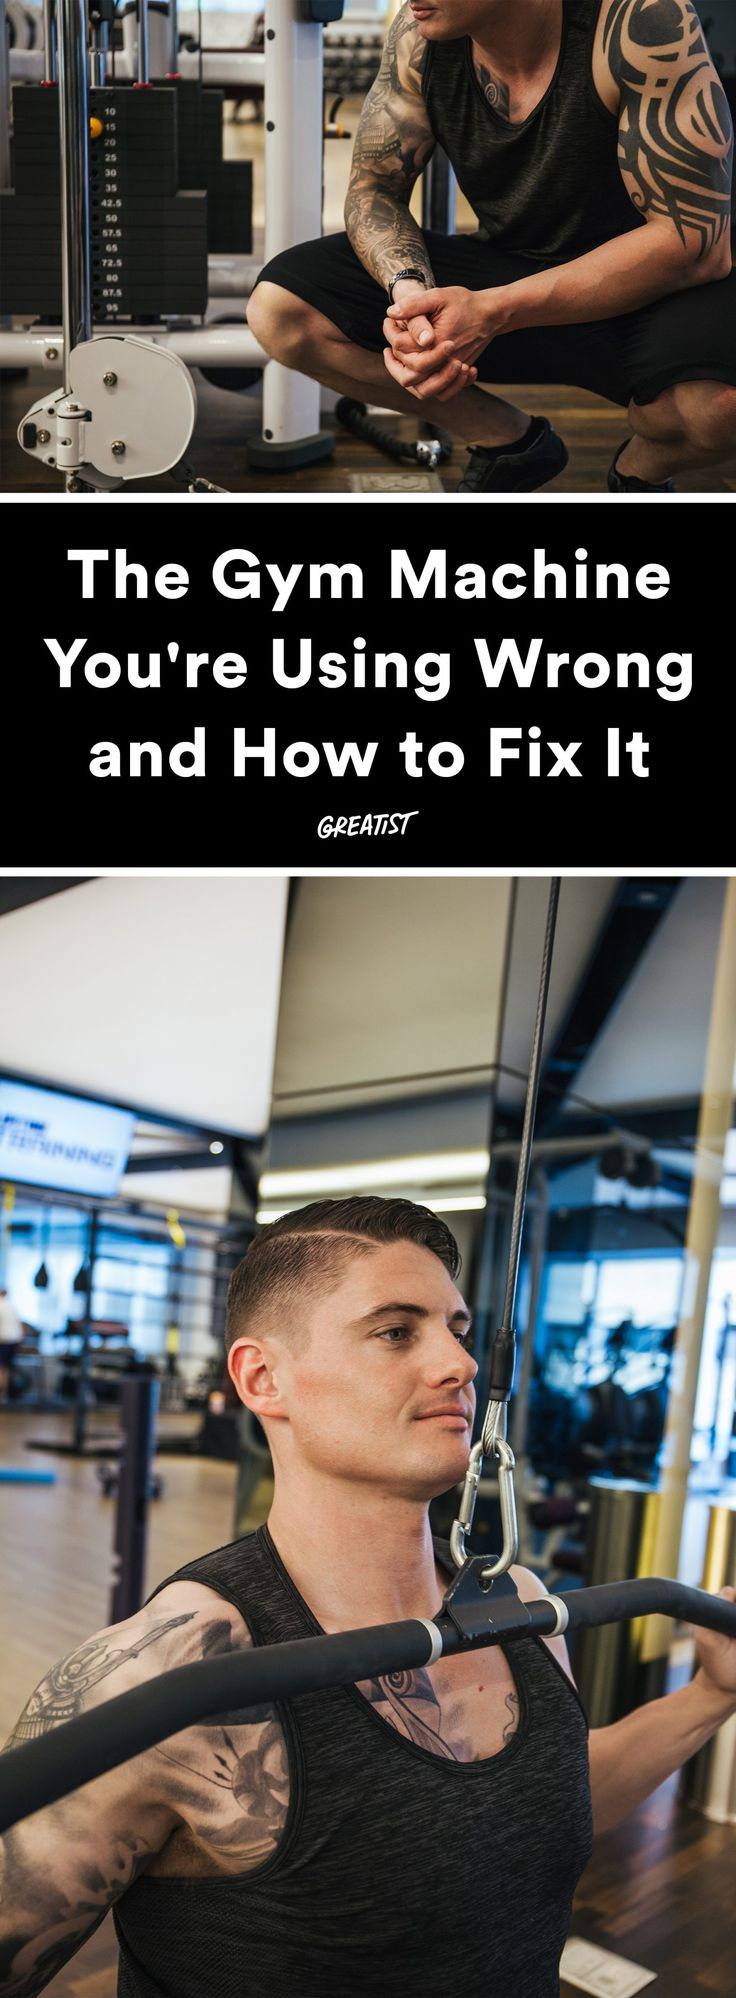 We all make mistakes.  #greatist https://greatist.com/fitness/cable-crossover-how-to-use-it-correctly